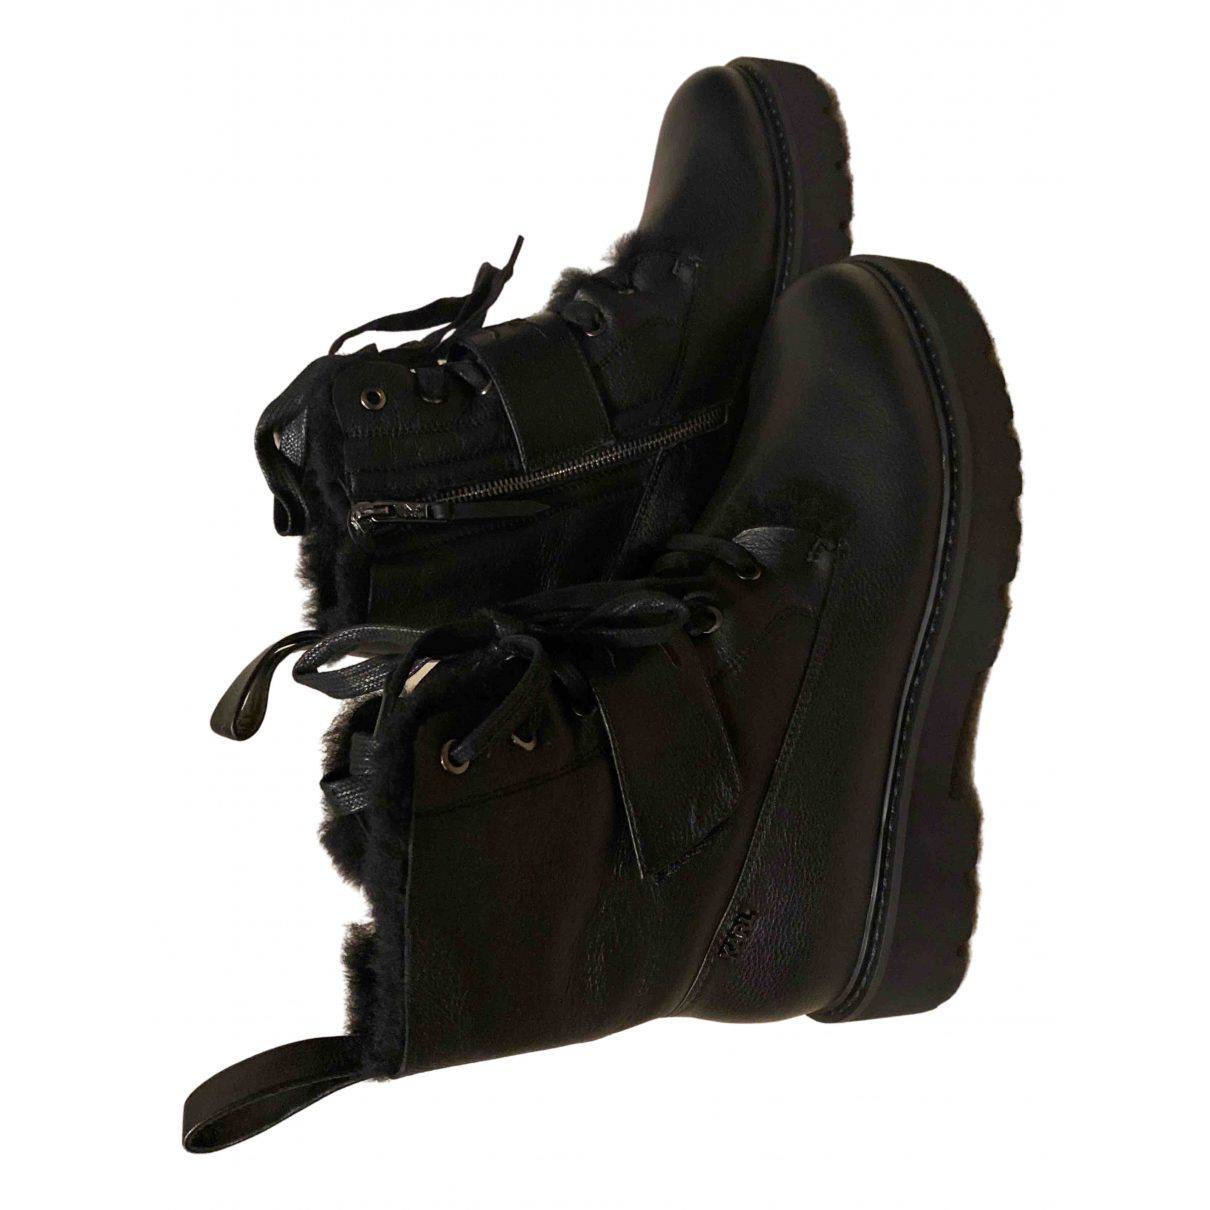 Karl Lagerfeld \N Black Leather Boots for Women 41 EU